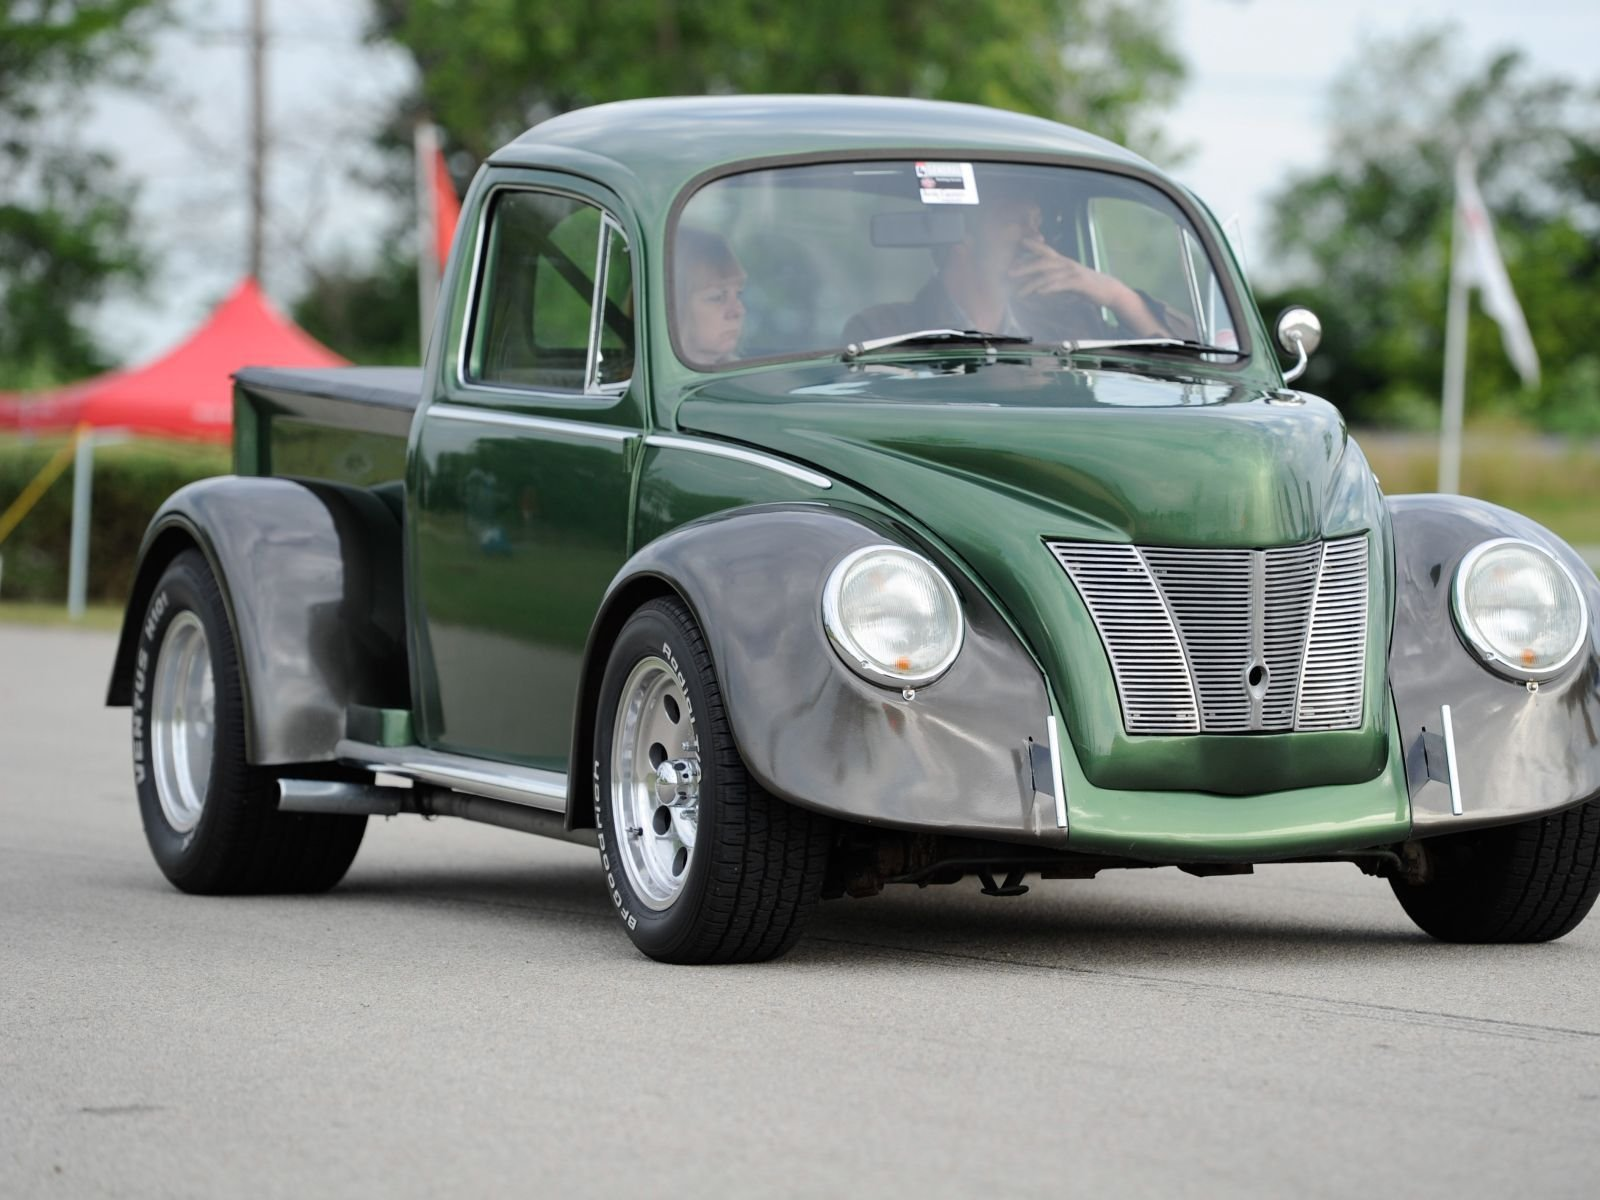 Funfest For Air Cooled Vw 2012 Pickup Photo 122 1600x1200